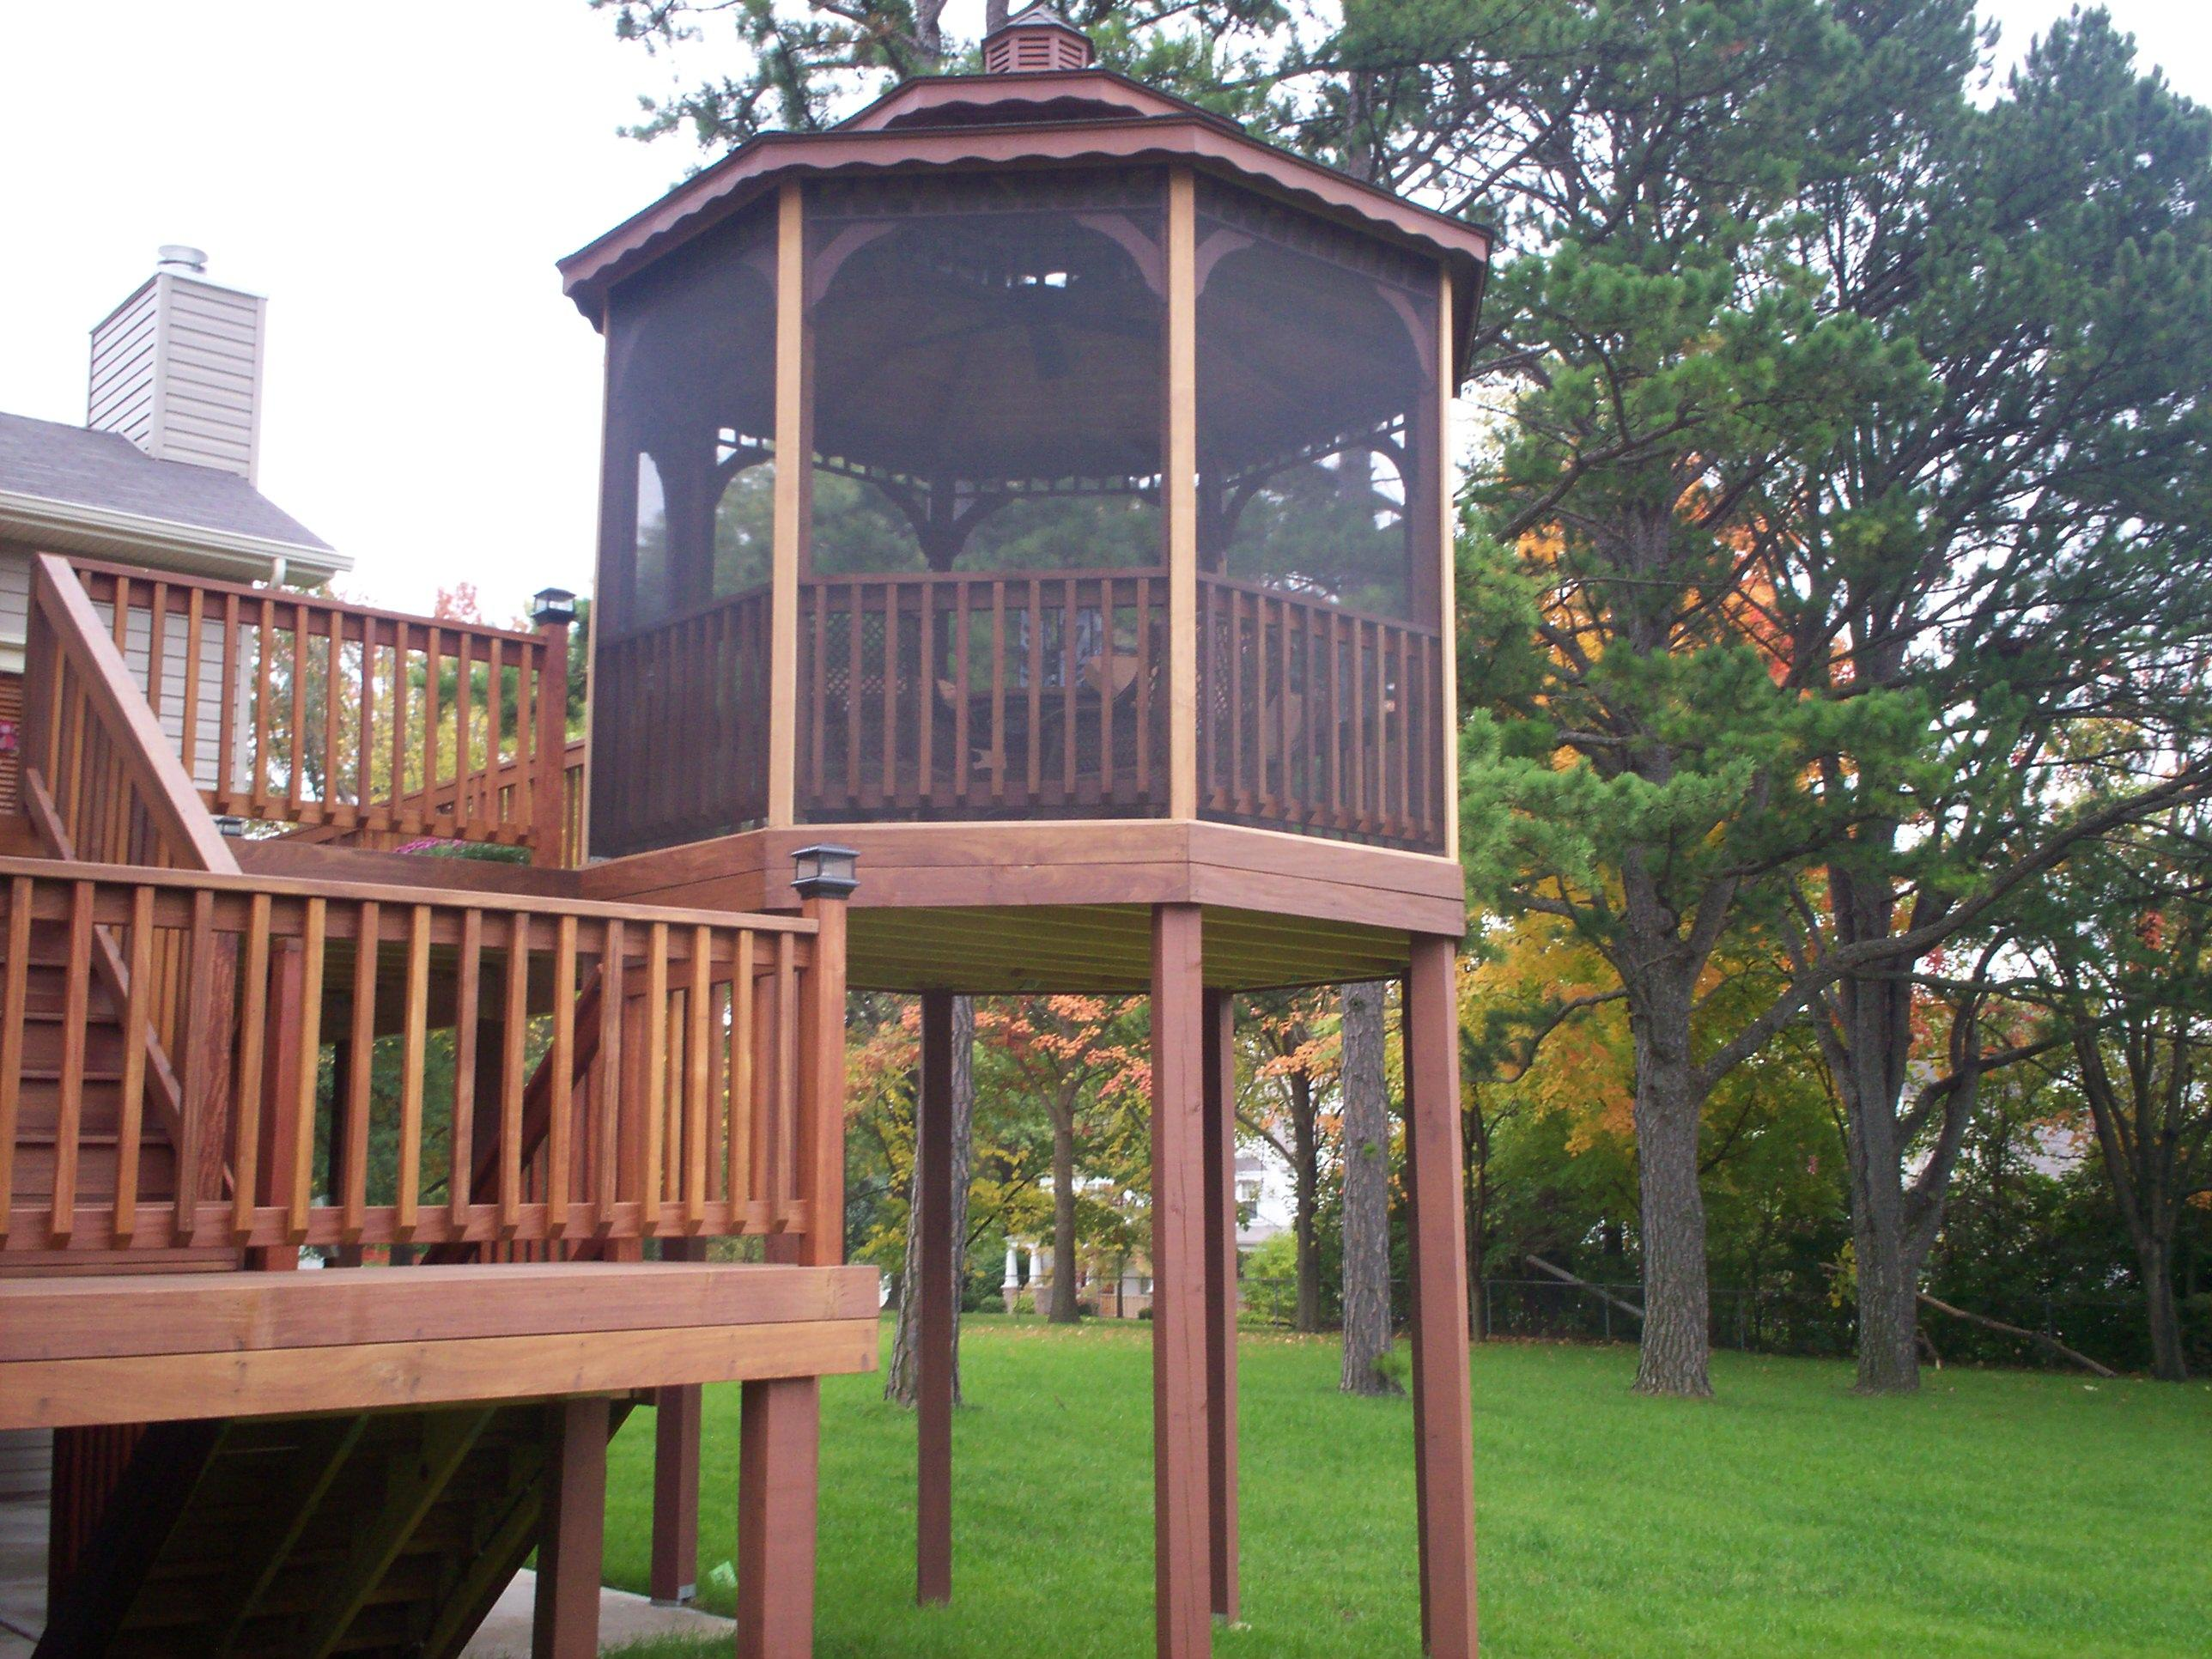 Deck builder in chesterfield for A perfect image salon chesterfield mo